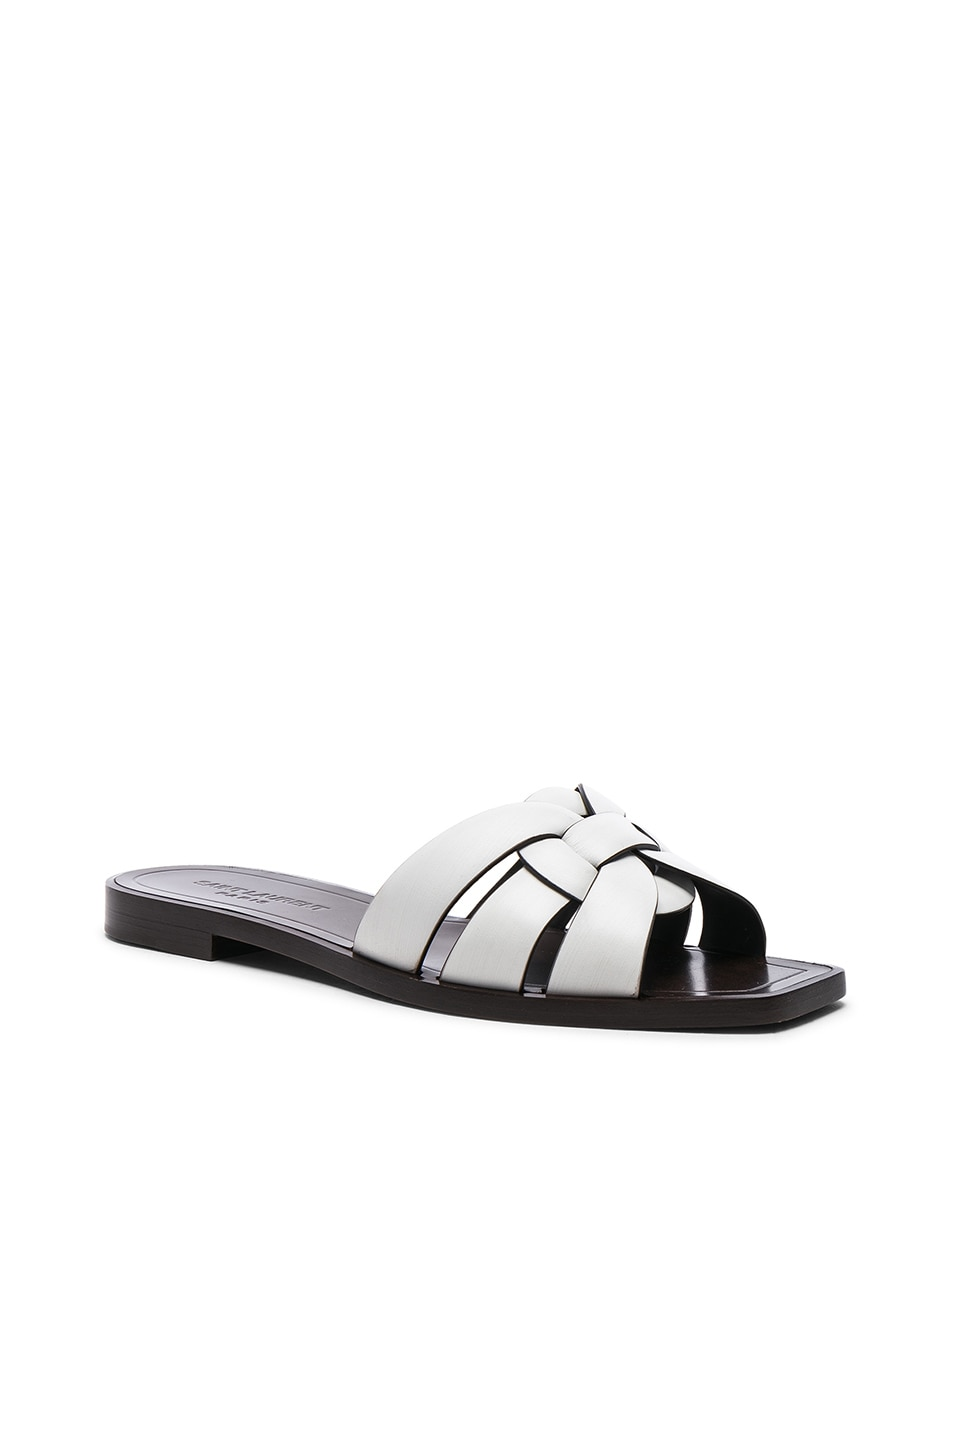 Image 2 of Saint Laurent Leather Nu Pieds Slides in Optic White